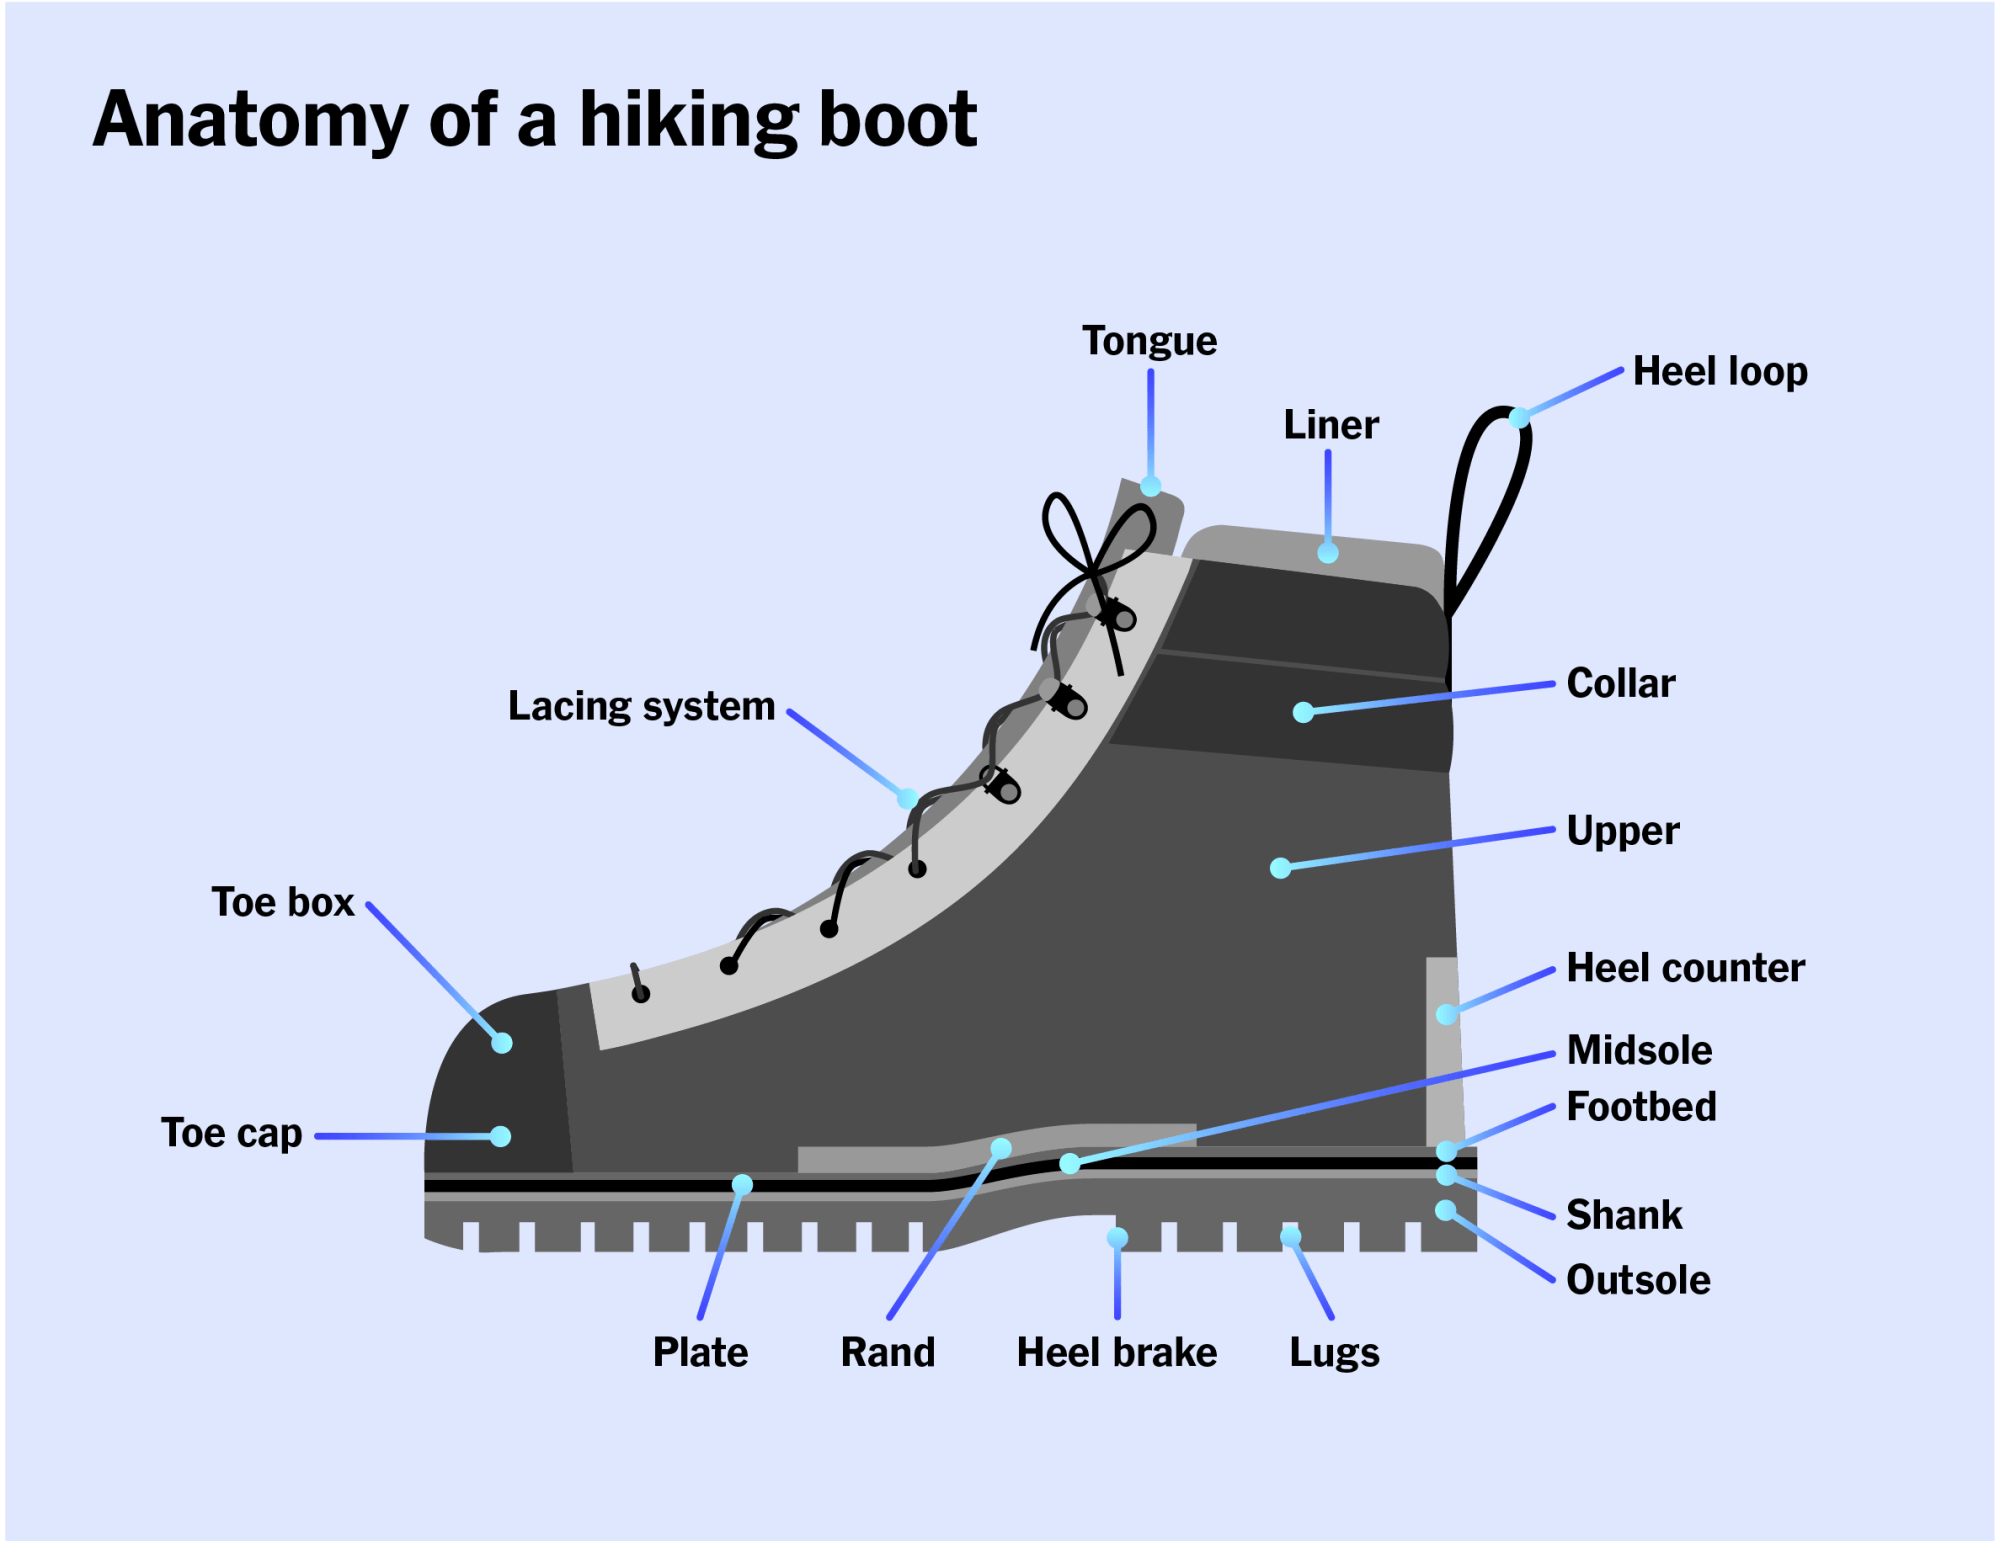 hight resolution of a diagram of a hiking boot with all of the different parts of the boot labeled